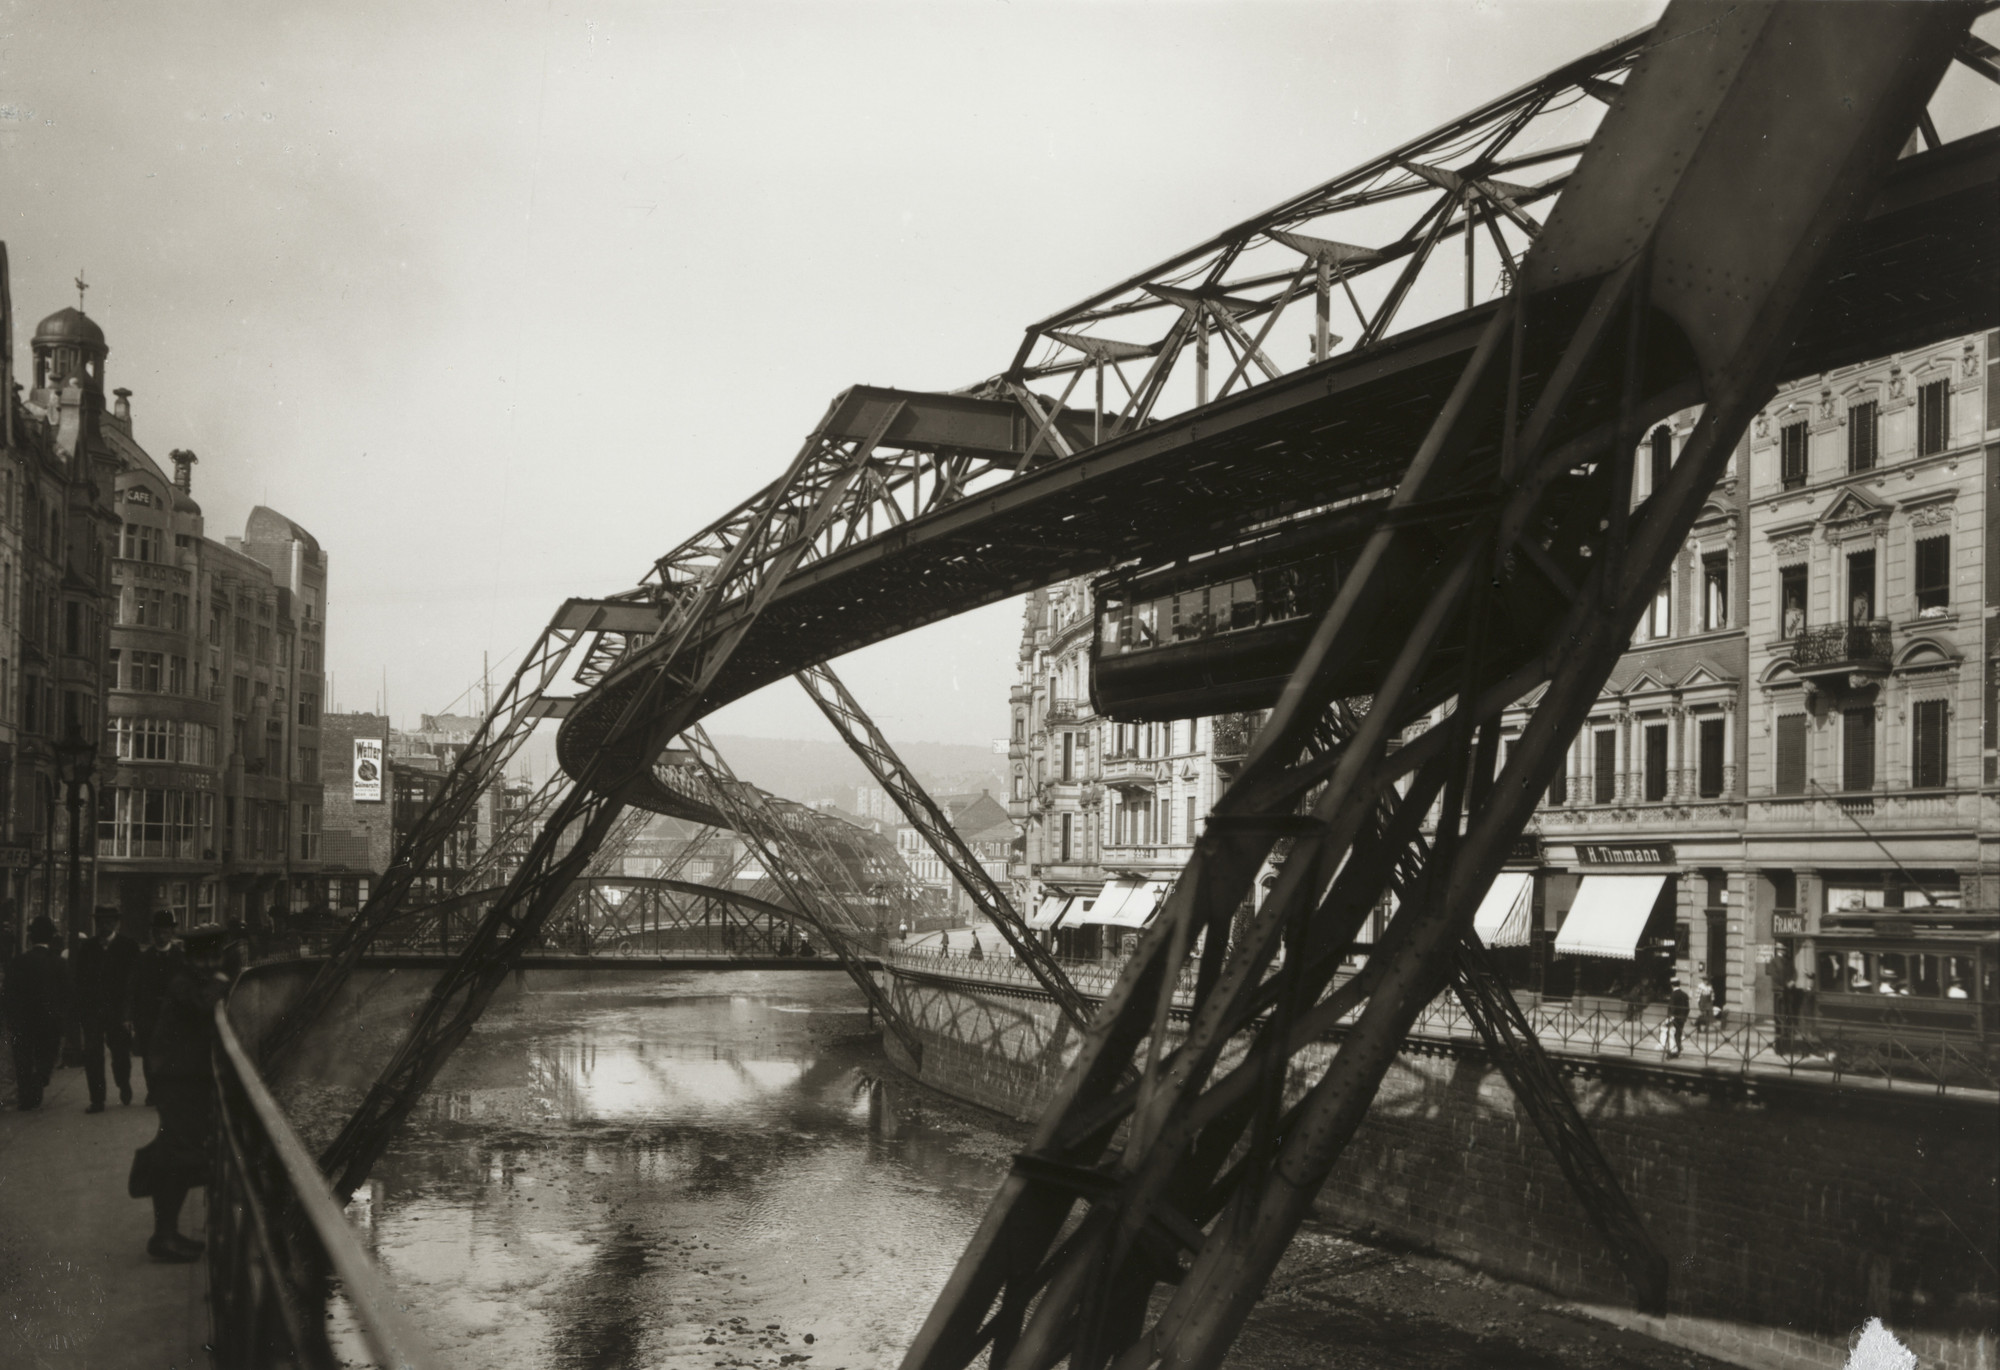 August Sander. Suspension Railway, Elberfeld. 1913